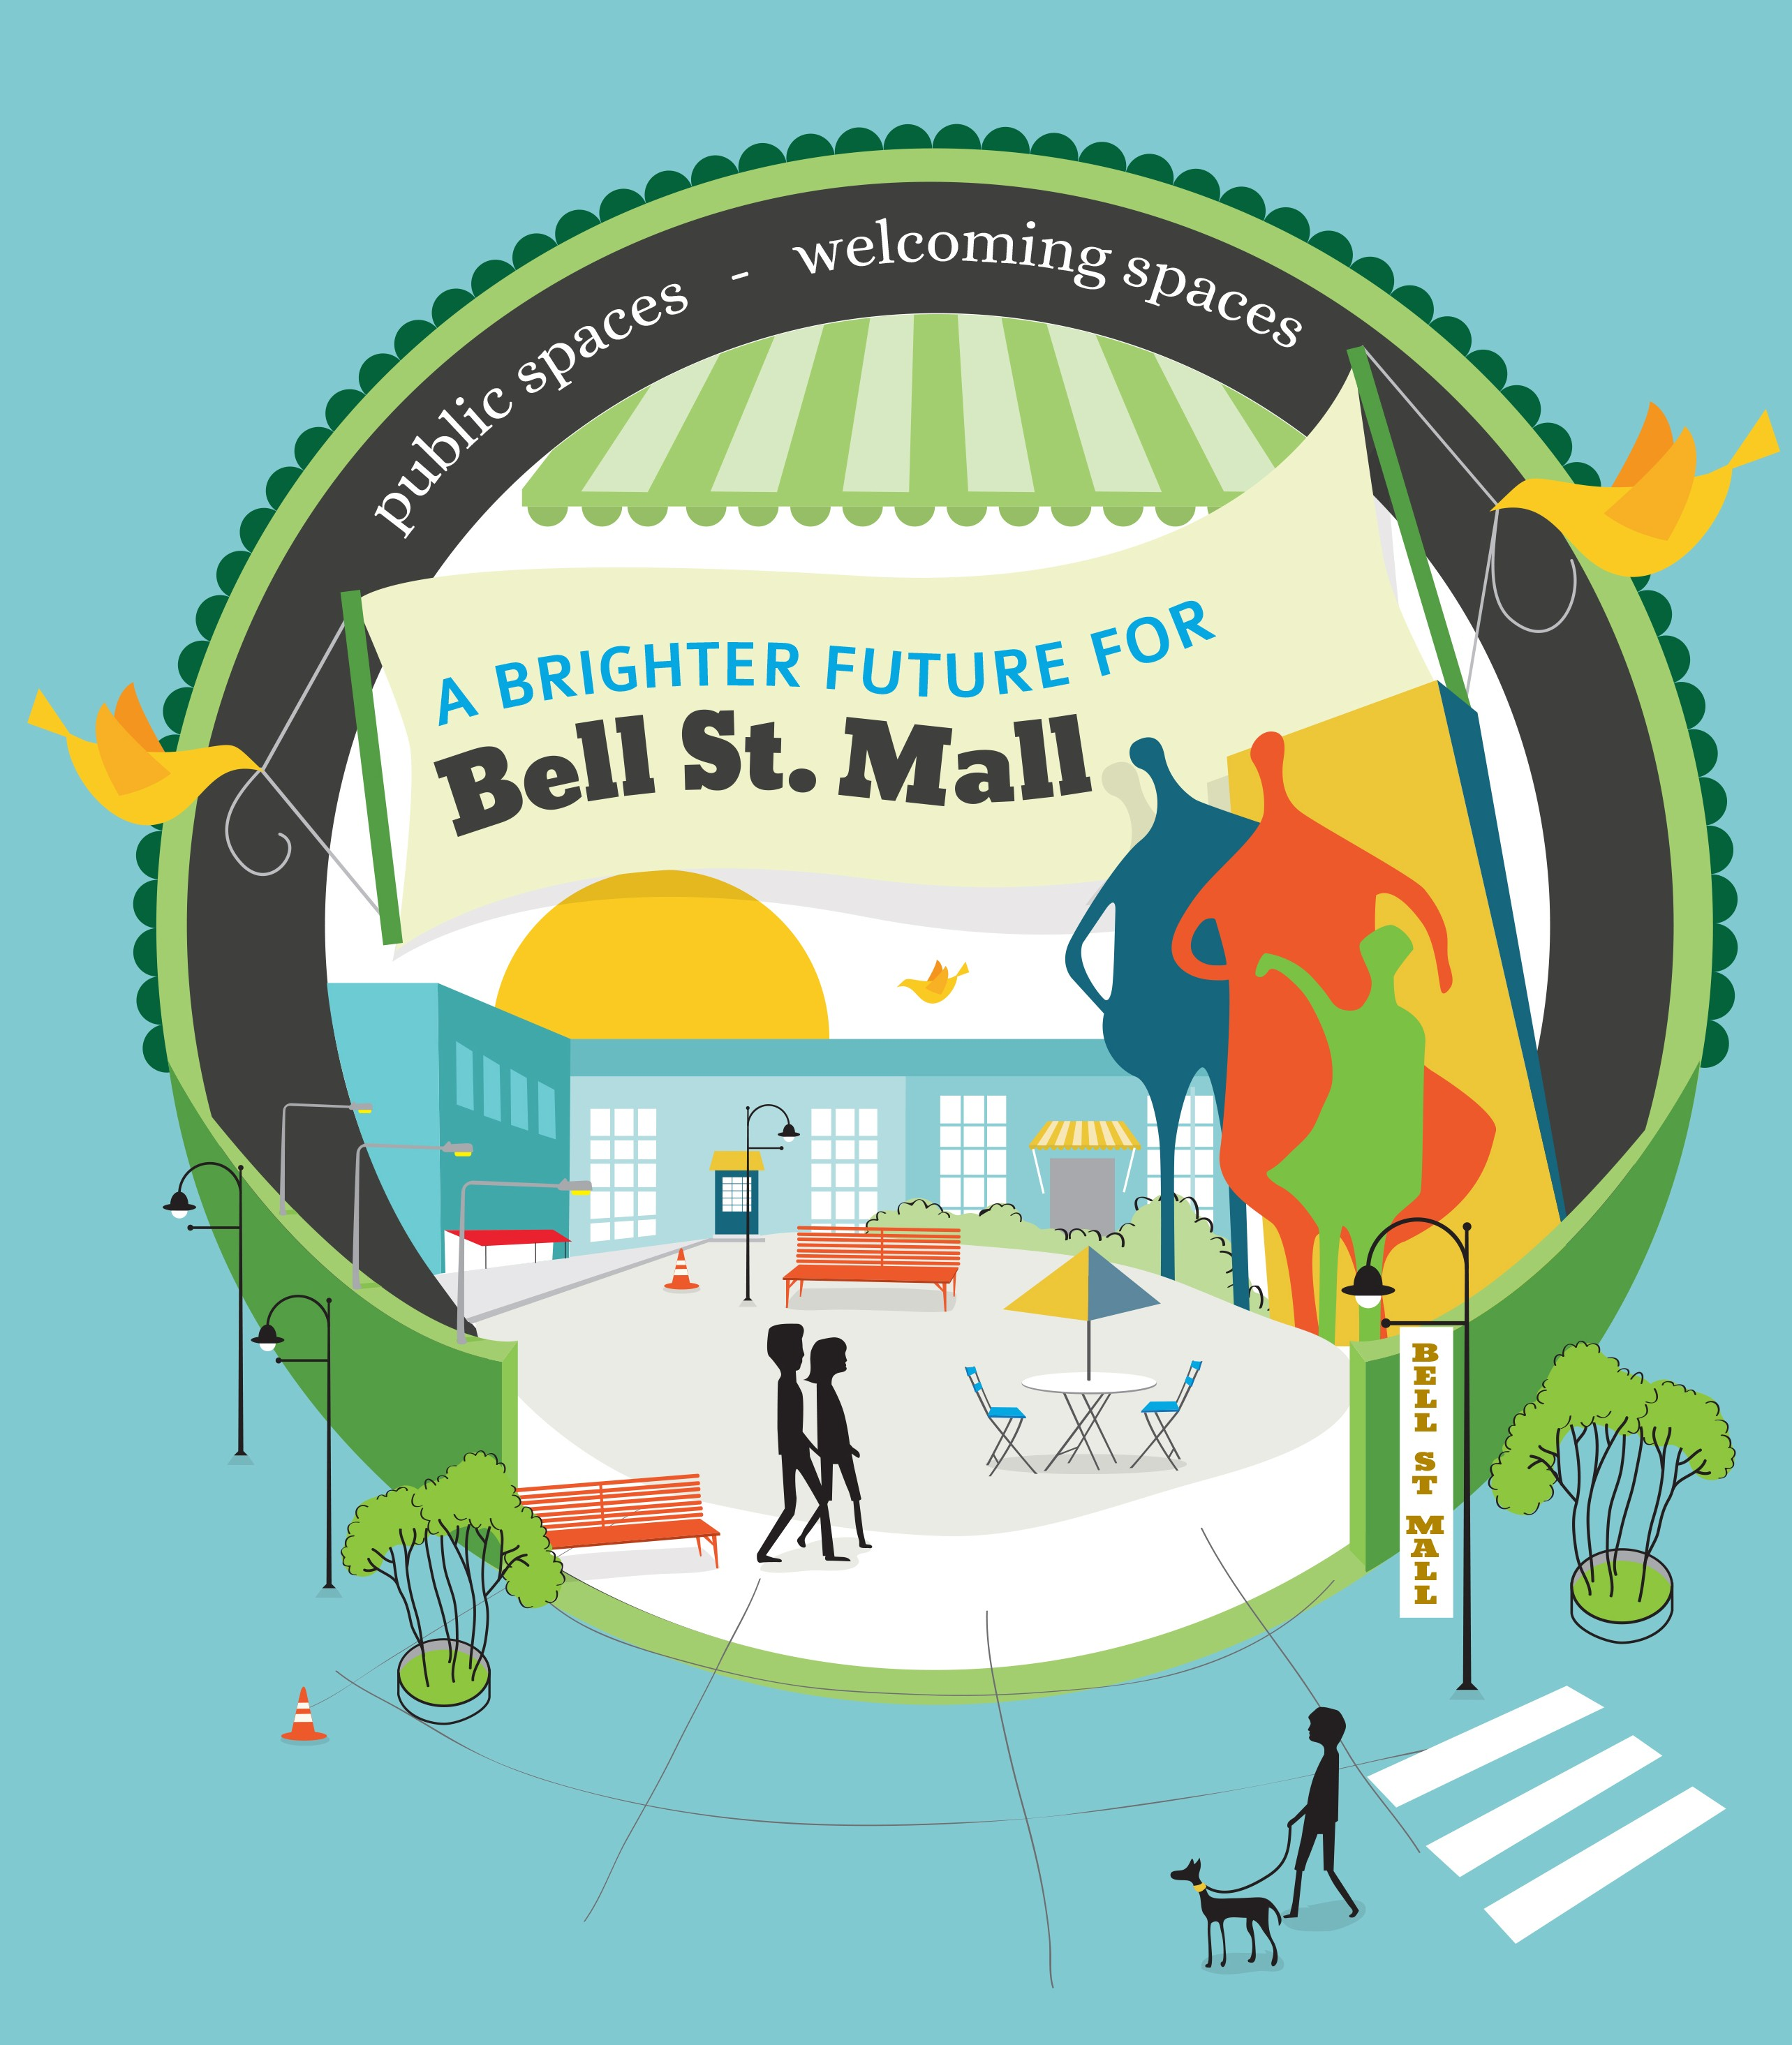 Bell St Mall Upgrades_Visual_Final